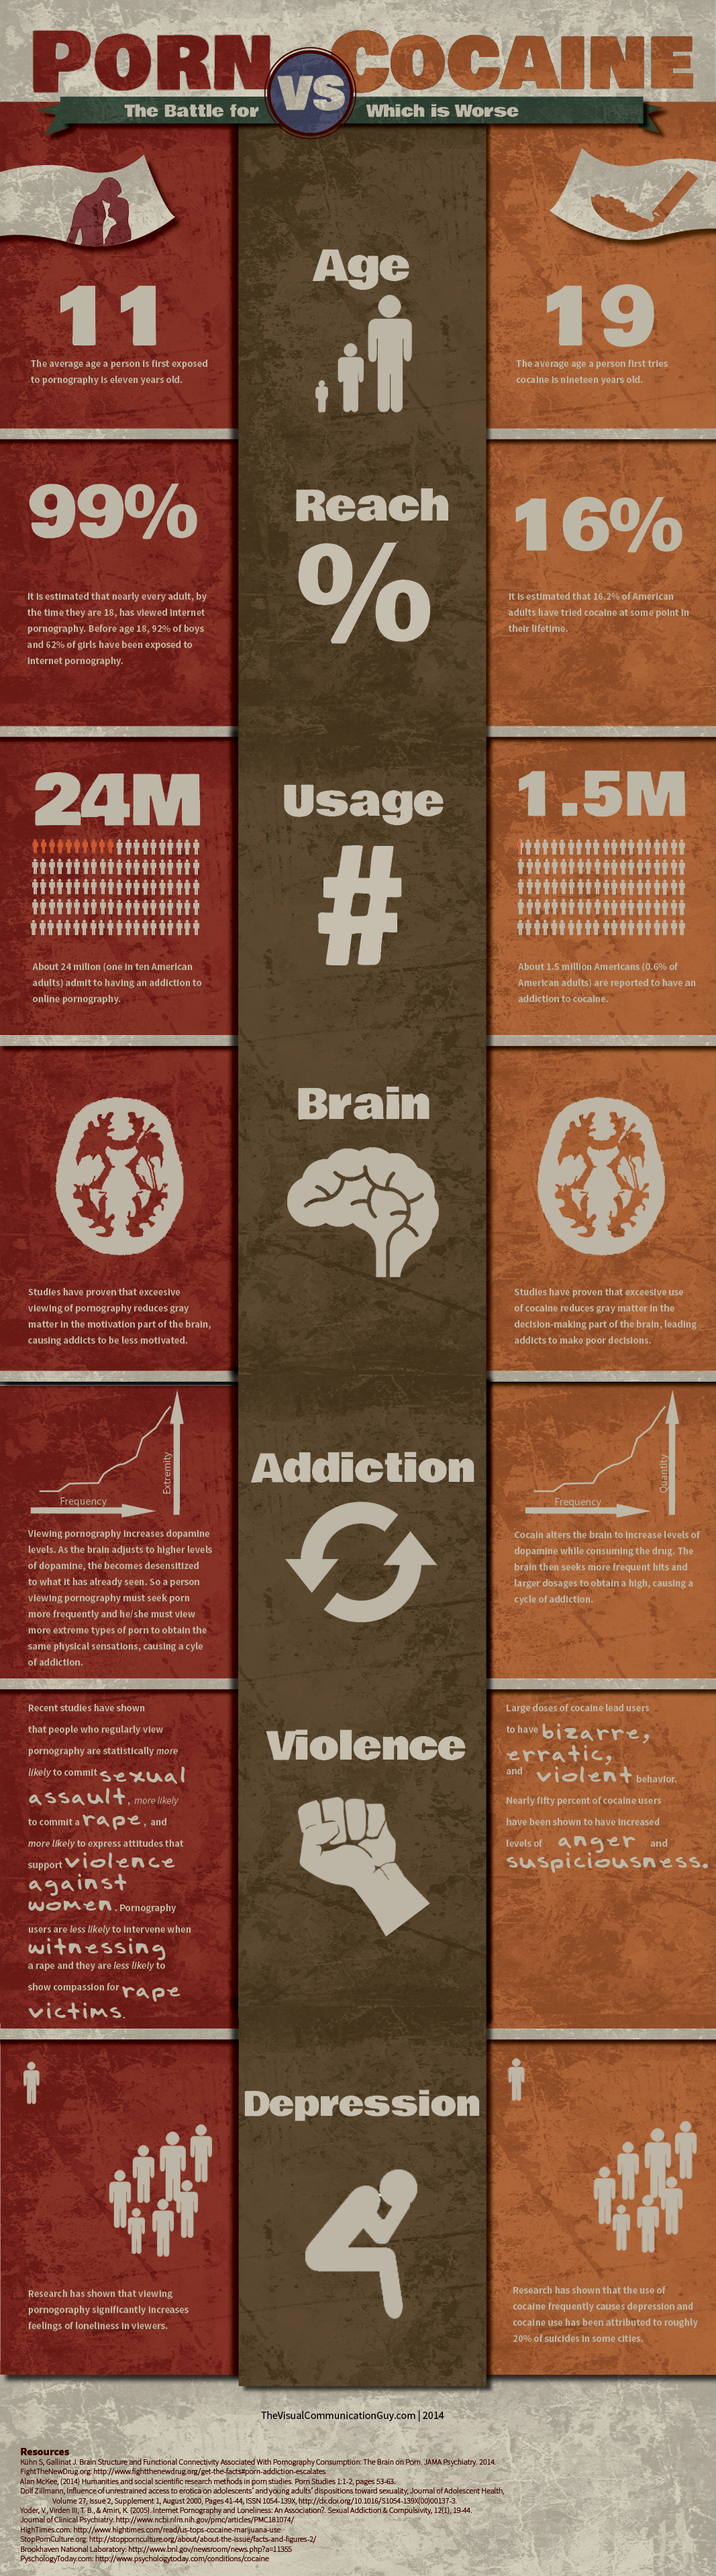 Porn vs Cocaine: Which is Worse? Infographic